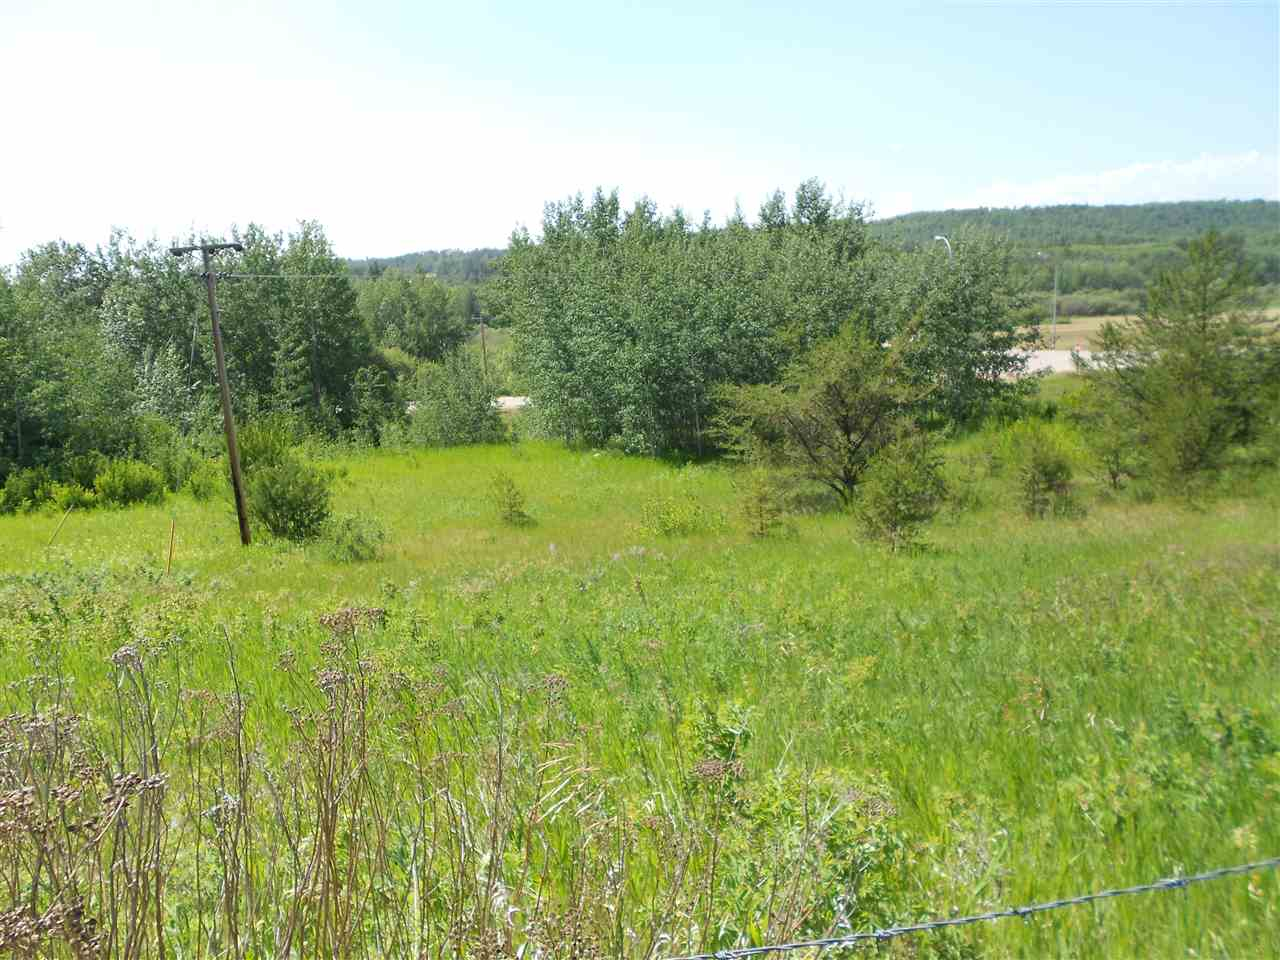 Main Photo: 240 TWP RD 623: Rural Athabasca County Rural Land/Vacant Lot for sale : MLS®# E4031193